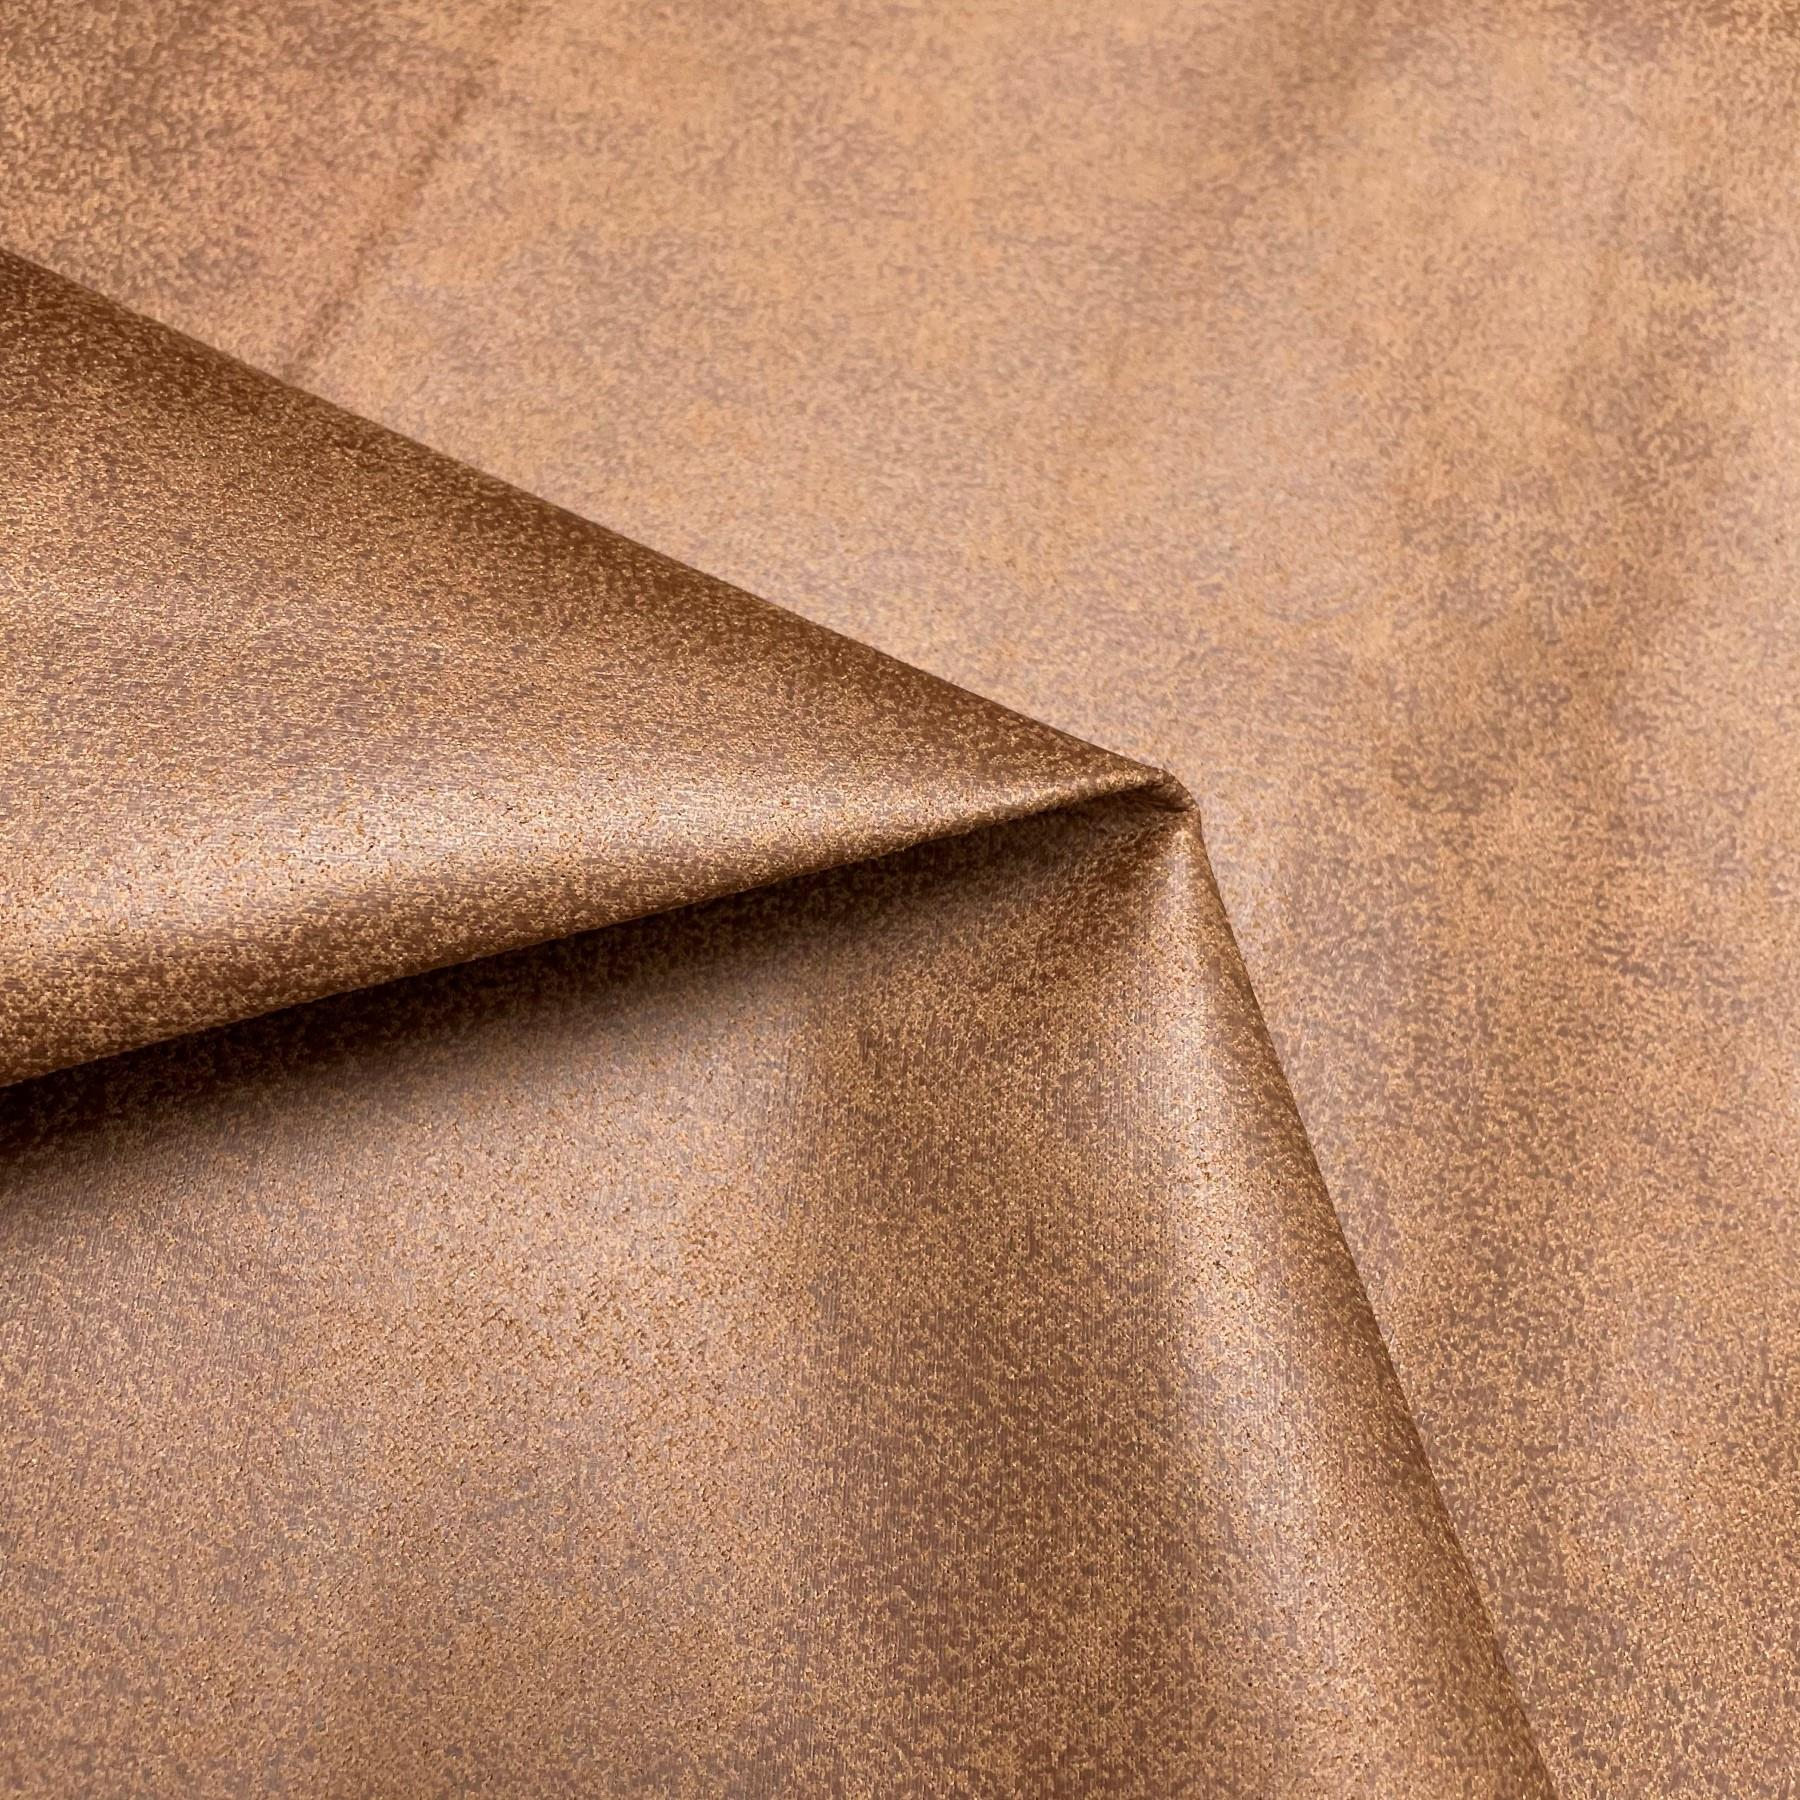 thumbnail 49 - AGED BROWN DISTRESSED ANTIQUED SUEDE FAUX LEATHER LEATHERETTE UPHOLSTERY FABRIC